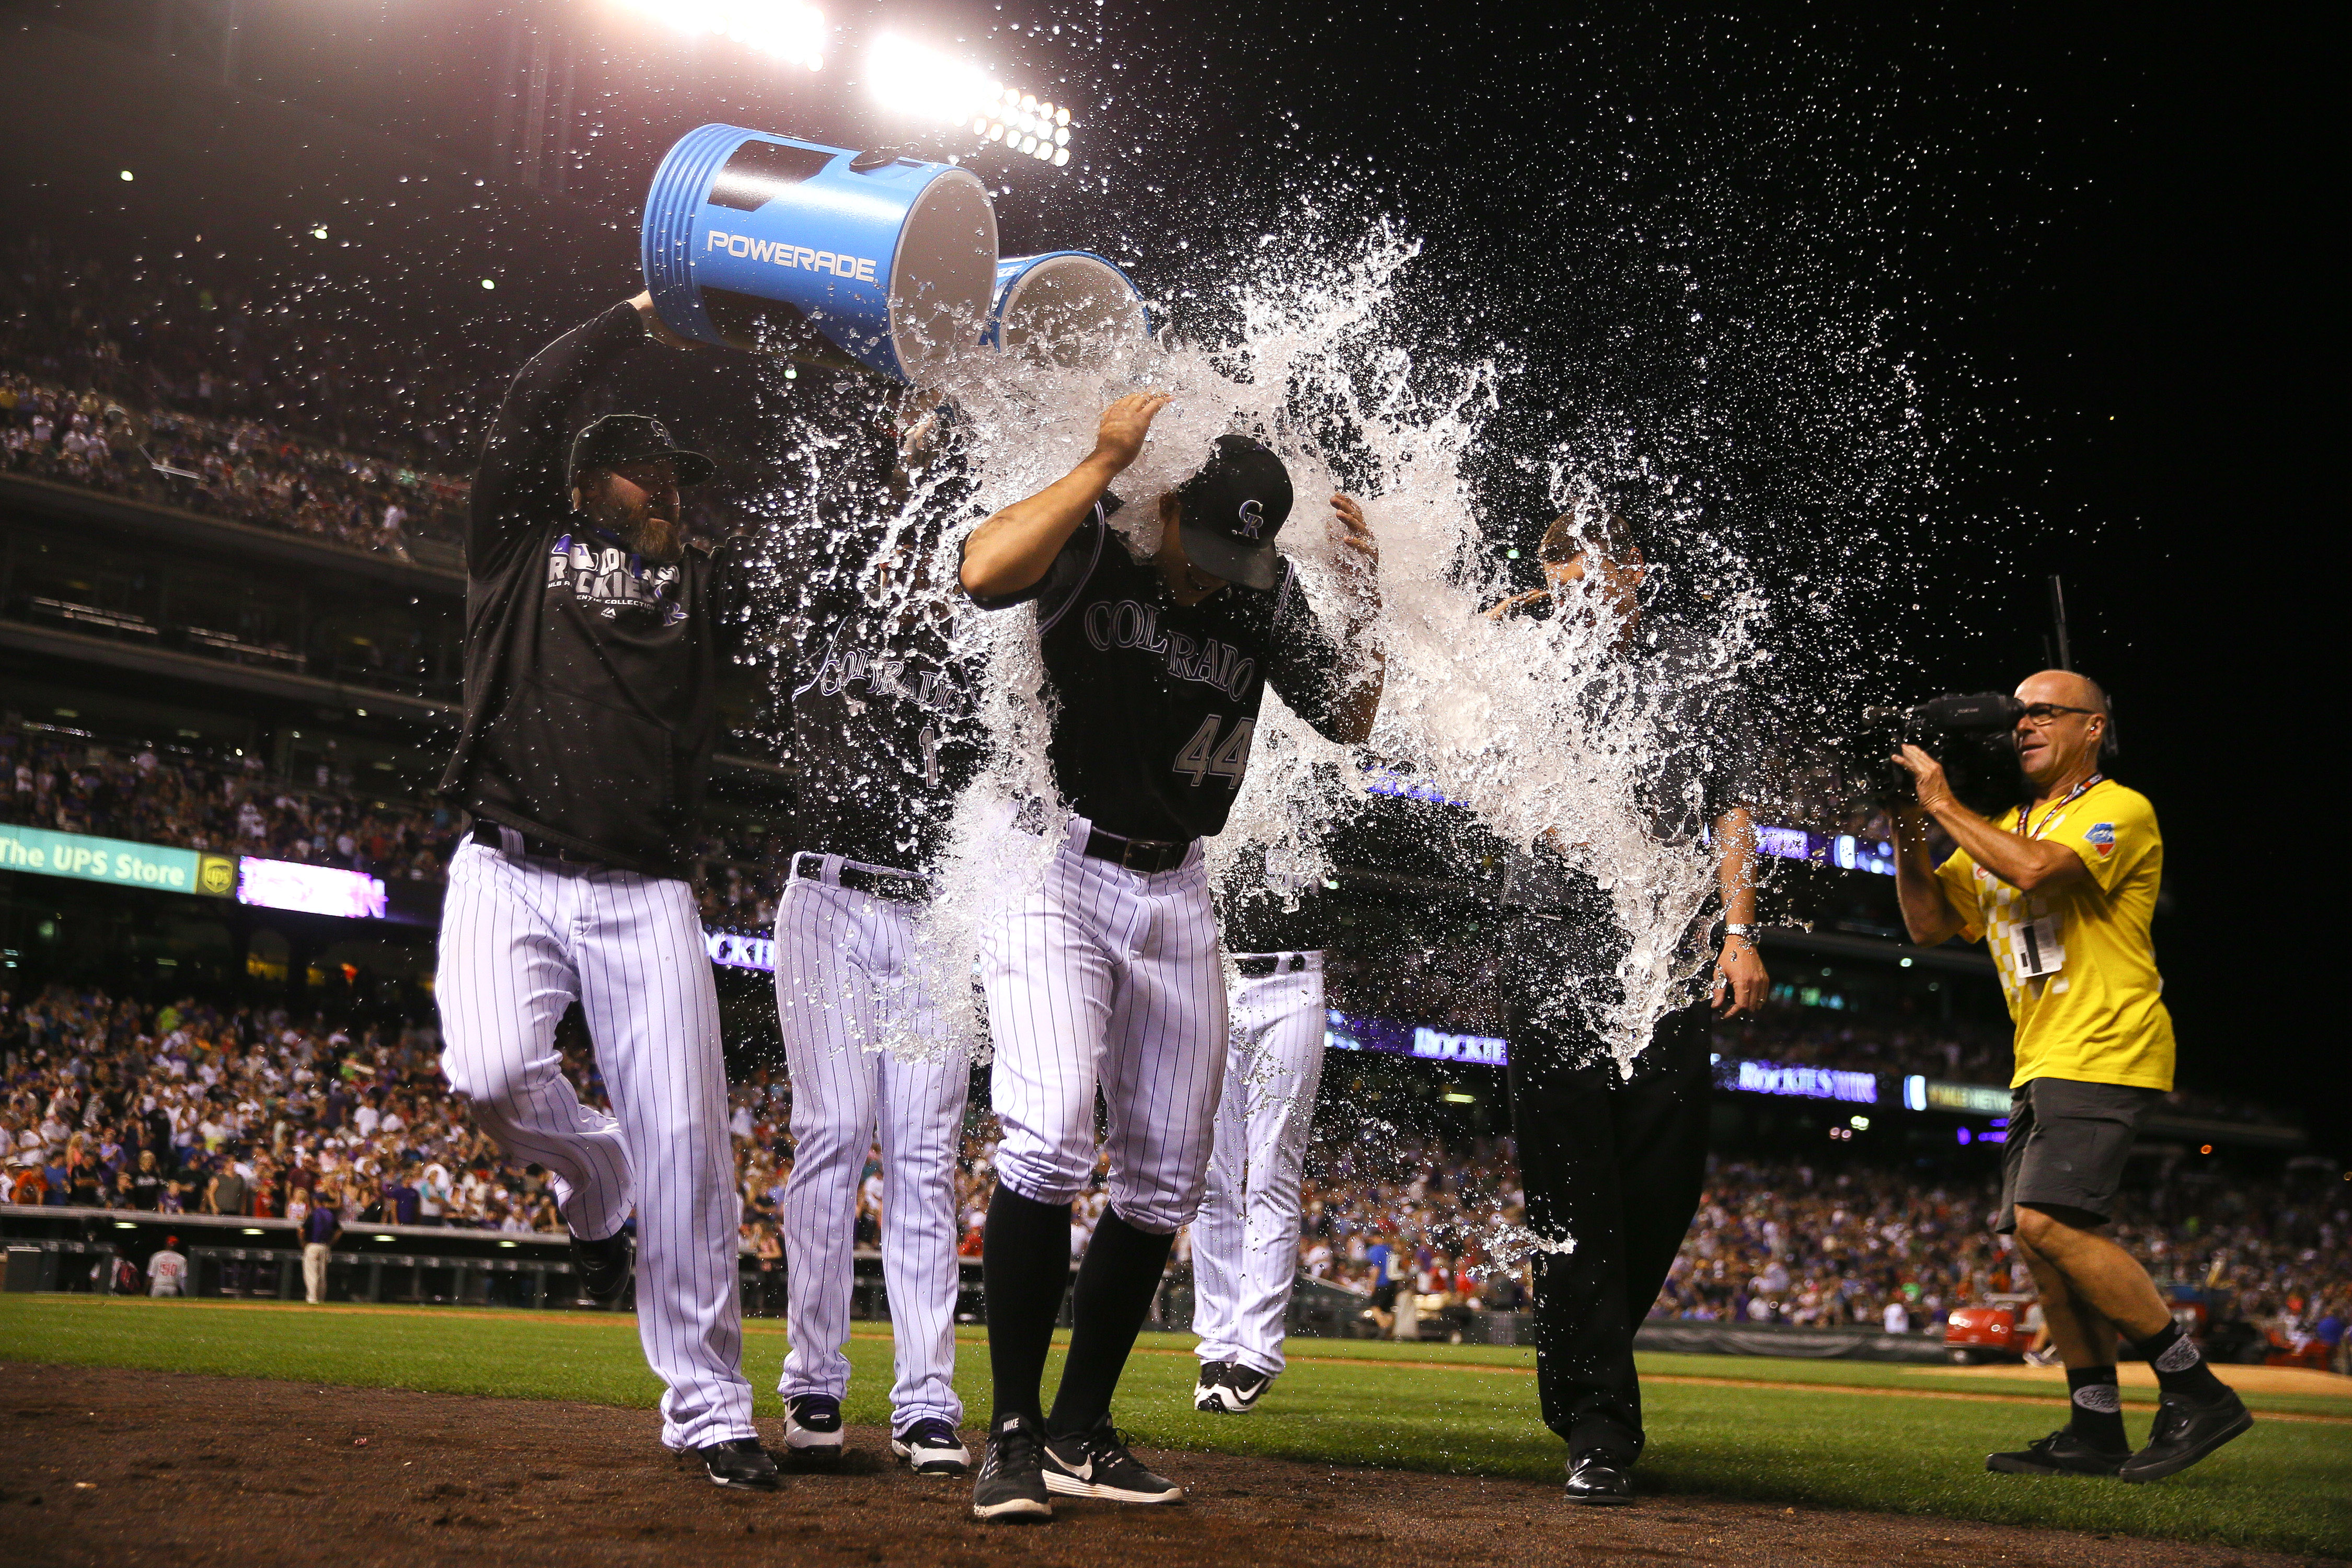 Tyler Anderson #44 of the Colorado Rockies gets a shower from teammates Jason Motte #30 and Brandon Barnes #1 after leading the team to the win against the Philadelphia Phillies at Coors Field on July 9, 2016 in Denver, Colorado. The Rockies defeated the Phillies 8-3. (Photo by Justin Edmonds/Getty Images)